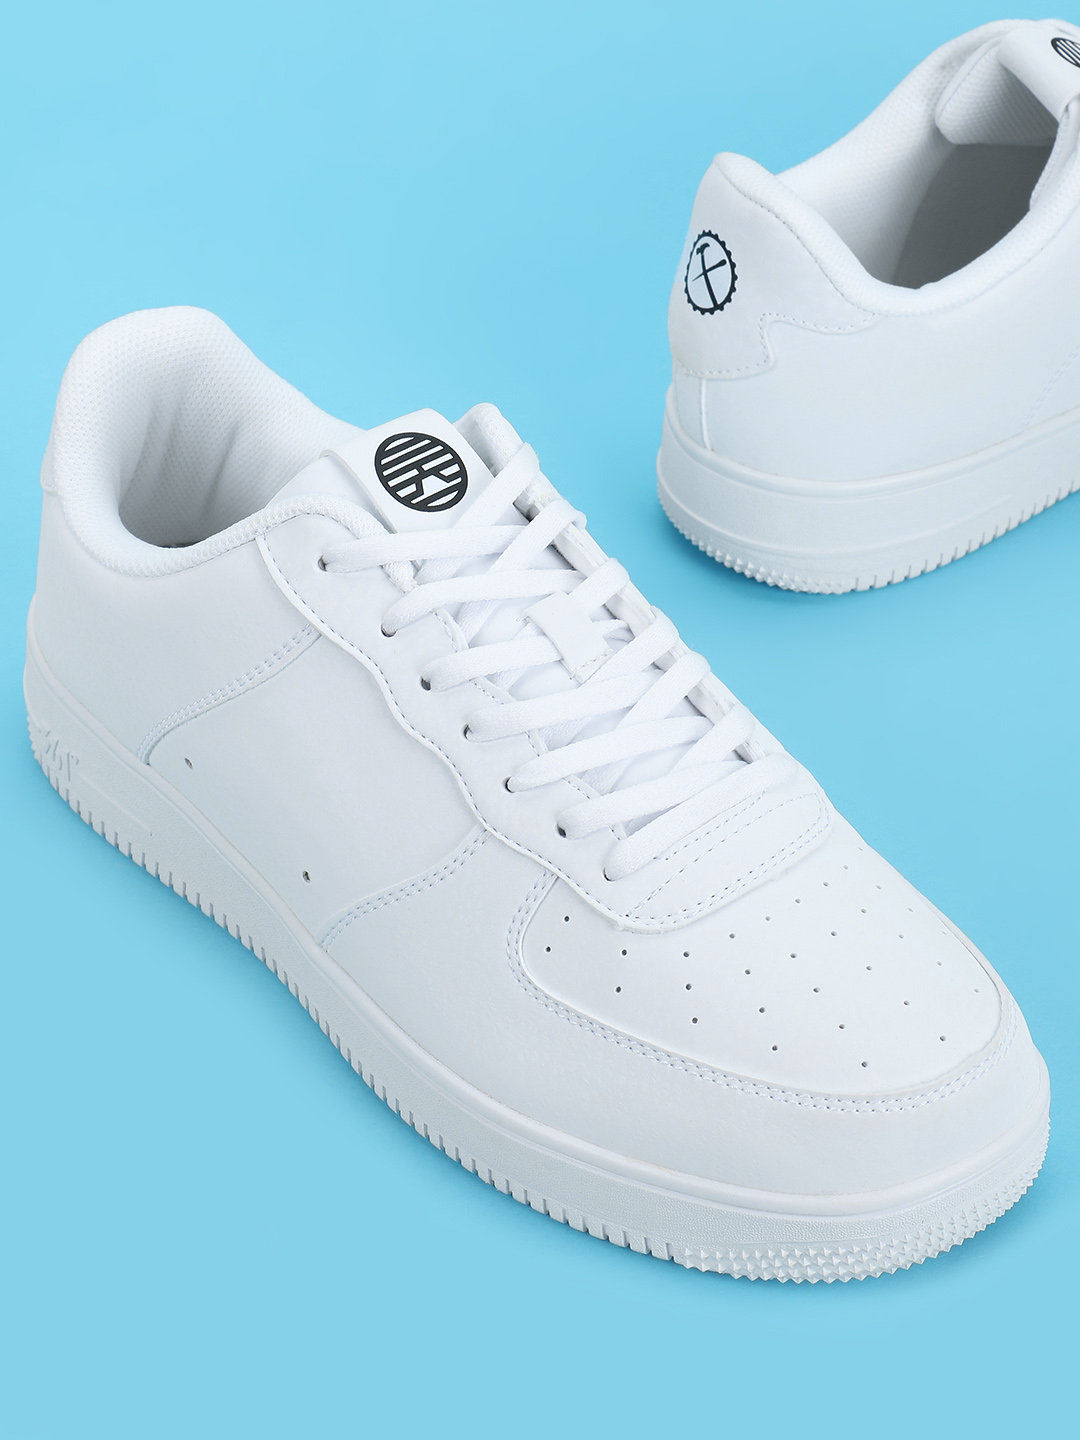 361 Degree White Skateboarding Sneakers 1